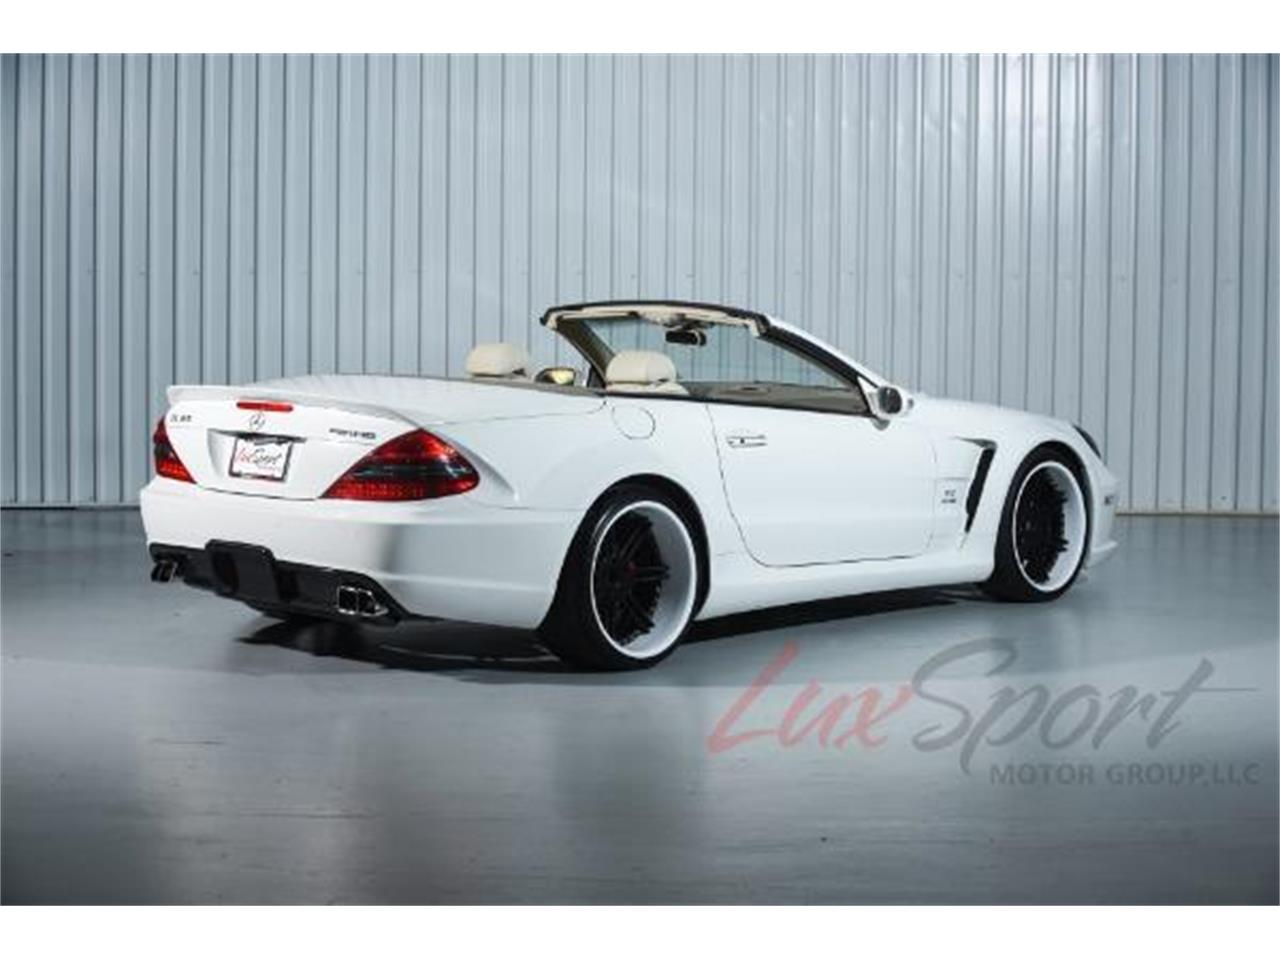 Large Picture of 2003 SL500 located in New York - $39,995.00 Offered by LuxSport Motor Group, LLC - MO0A